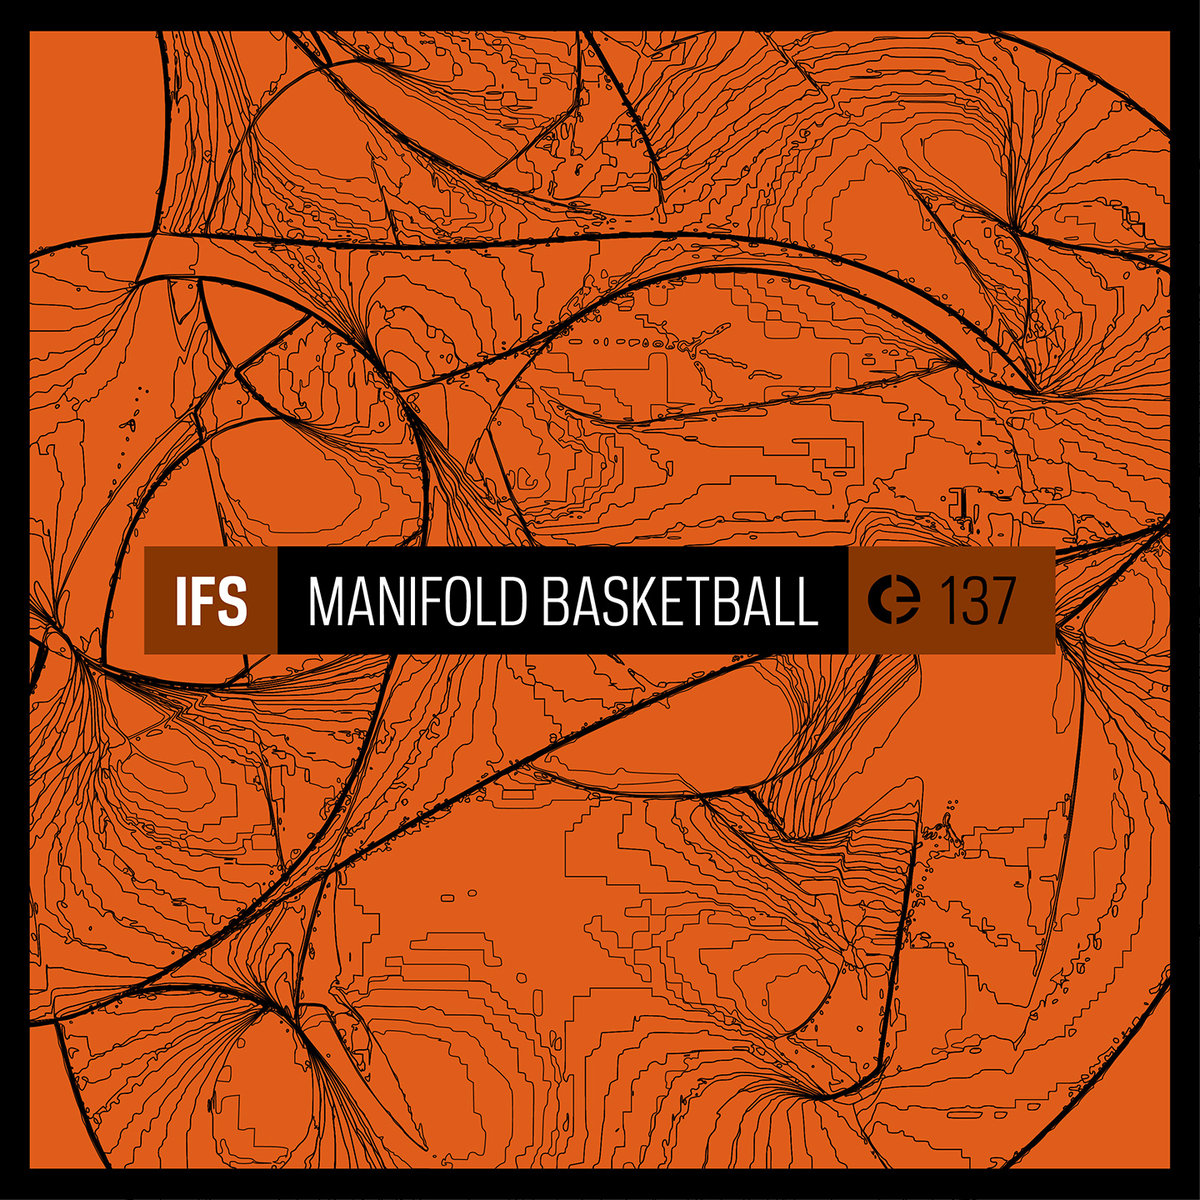 Manifold Basketball